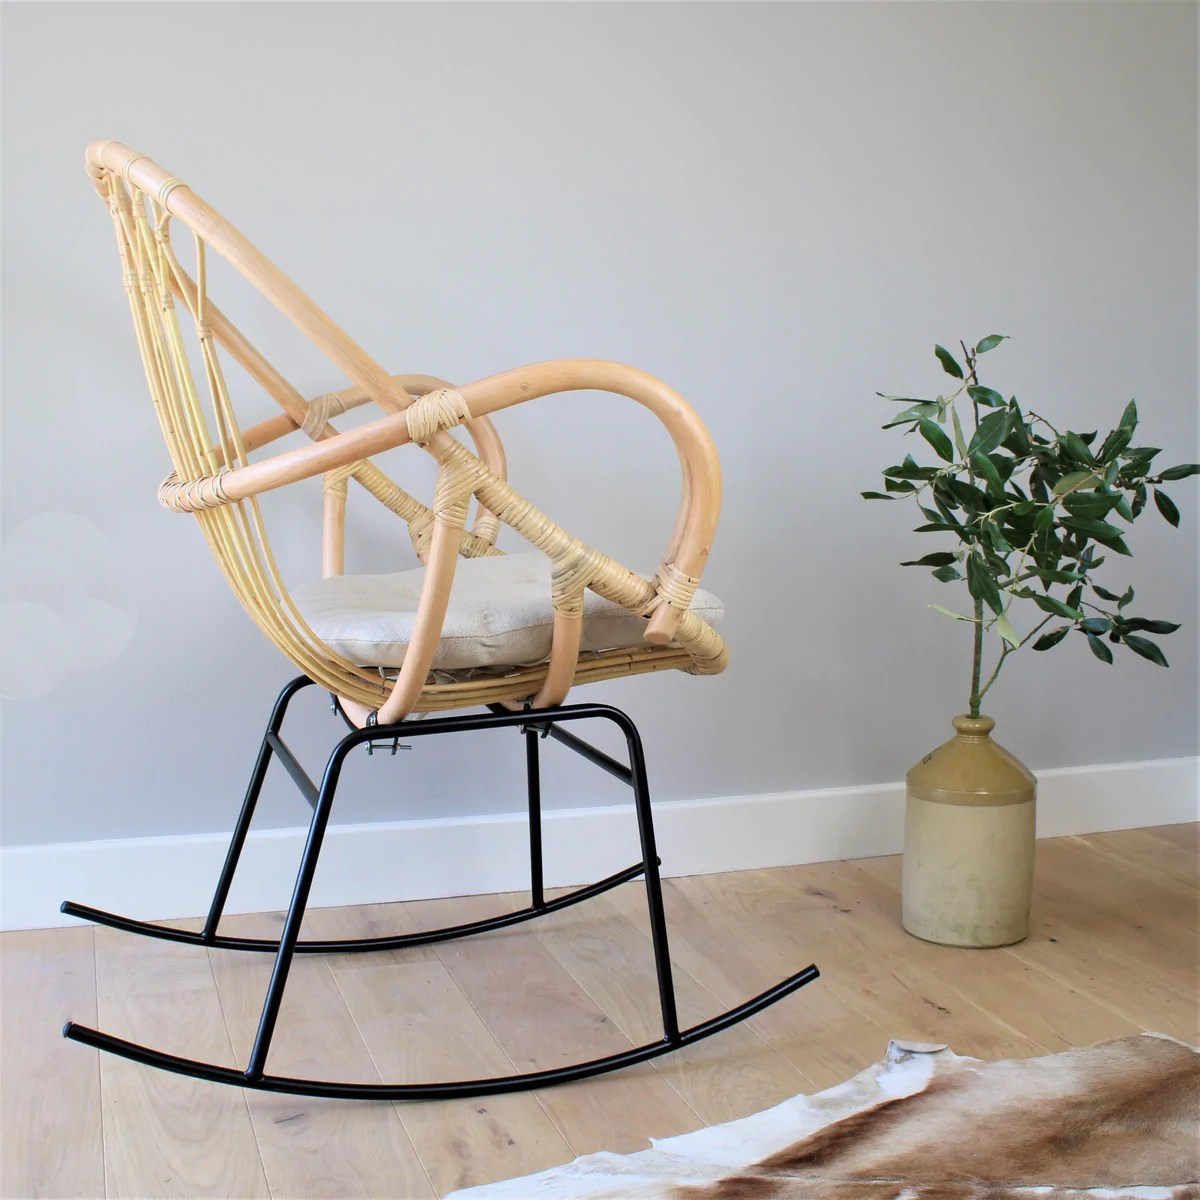 Wicker Rocking Chair Bali Rocker